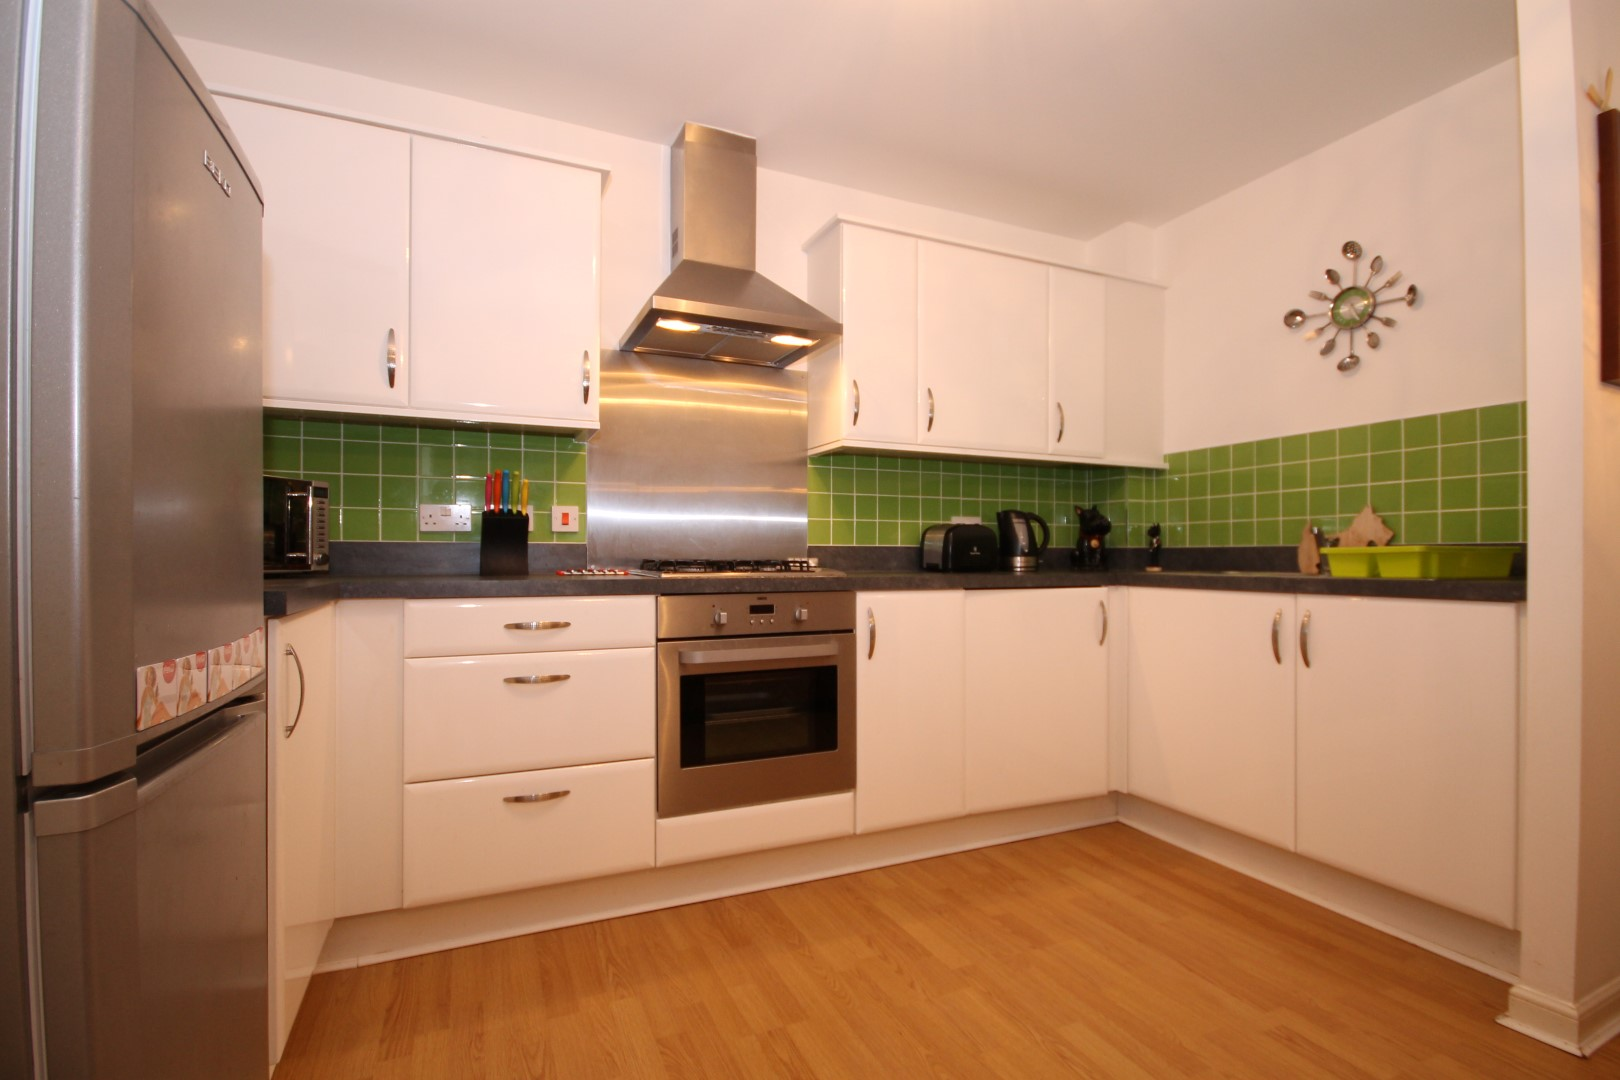 CARMYLE – 2 Bedroom Flat